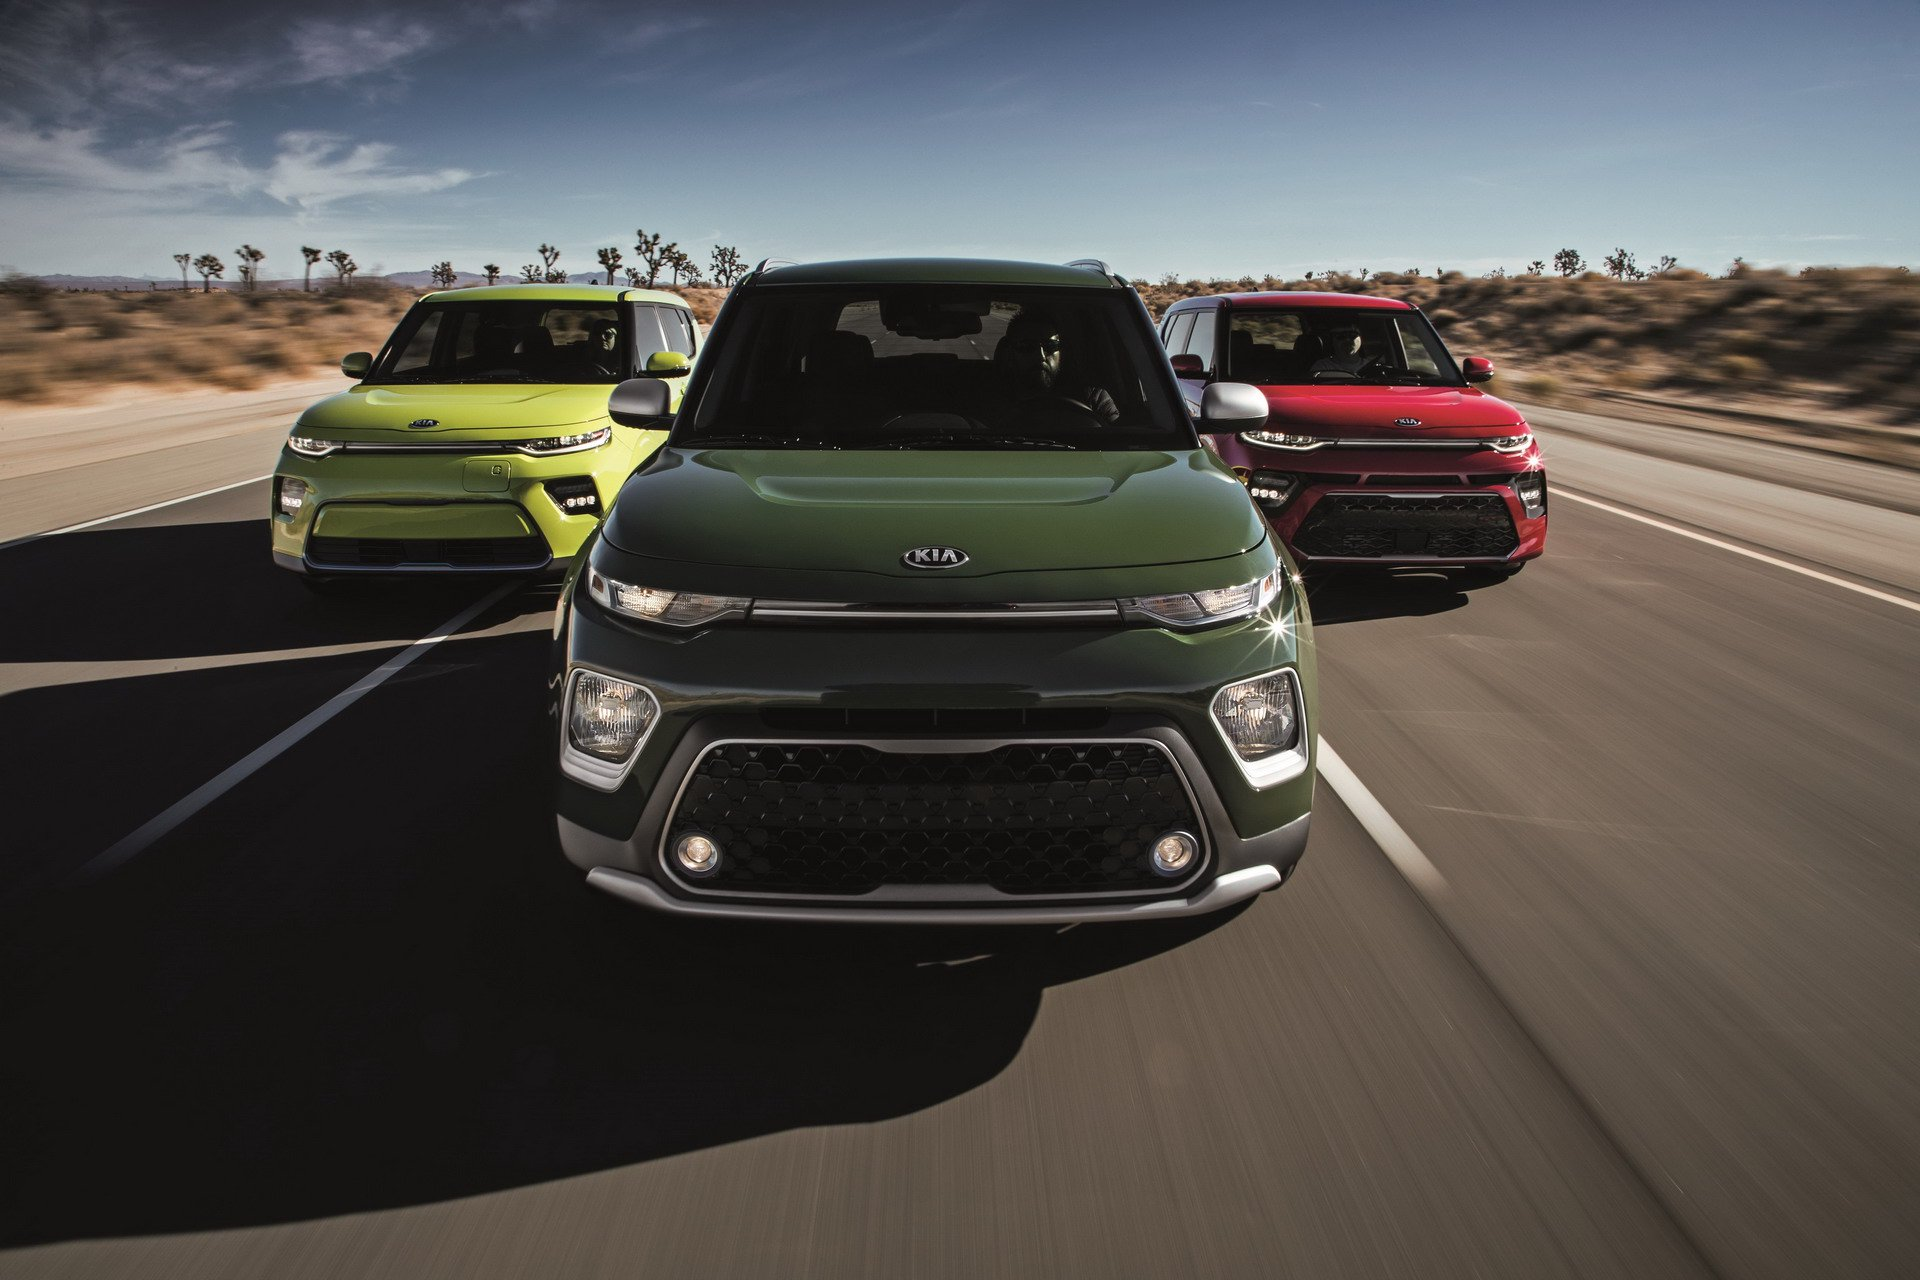 2020 Kia Soul Unveiled With Body Kits And Cool Looks